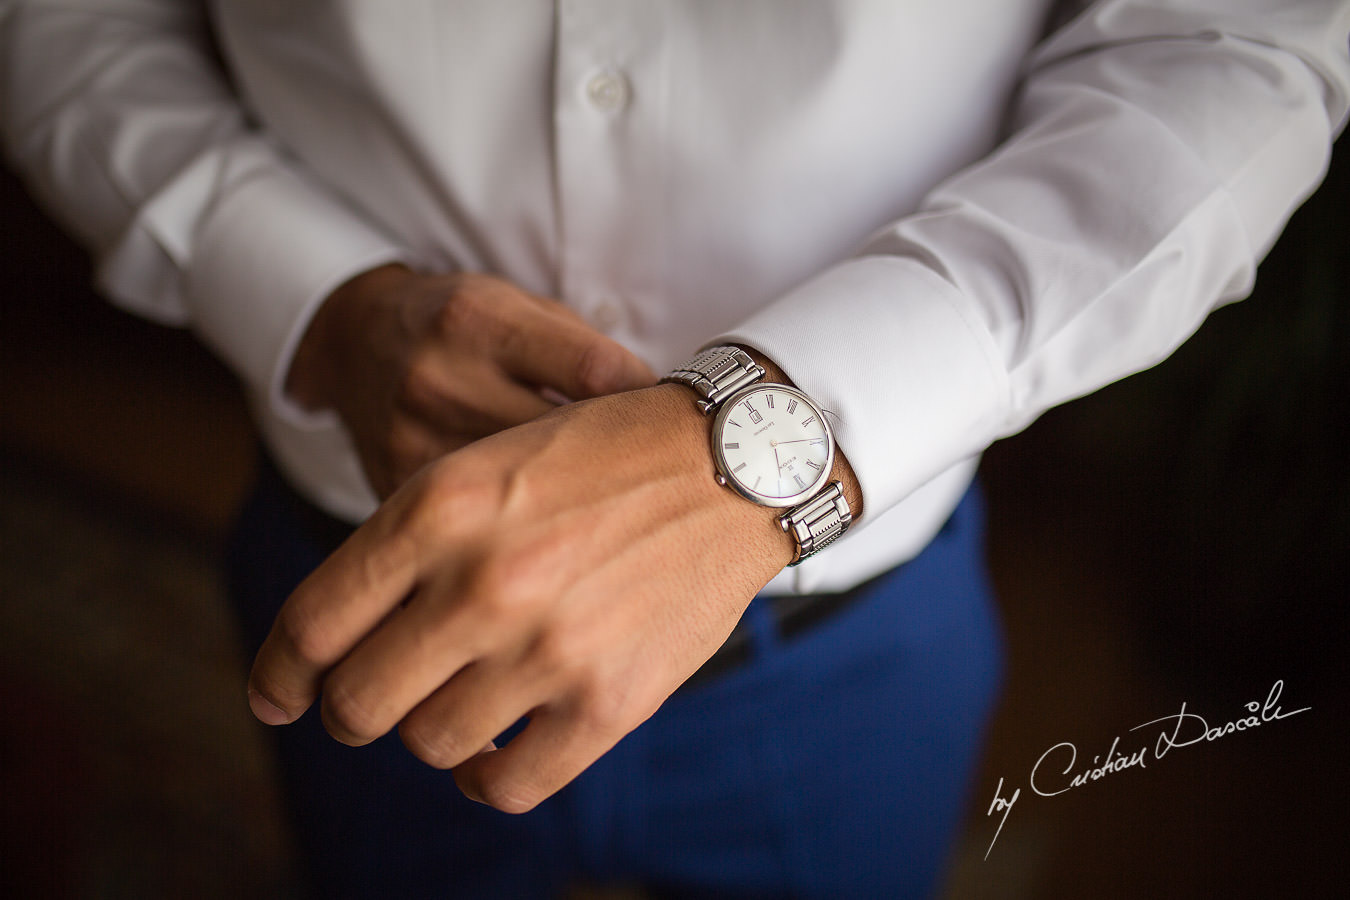 The Groom, Alexis, arranging his Edox watch, captured at a wedding in Cyprus by Photographer Cristian Dascalu.